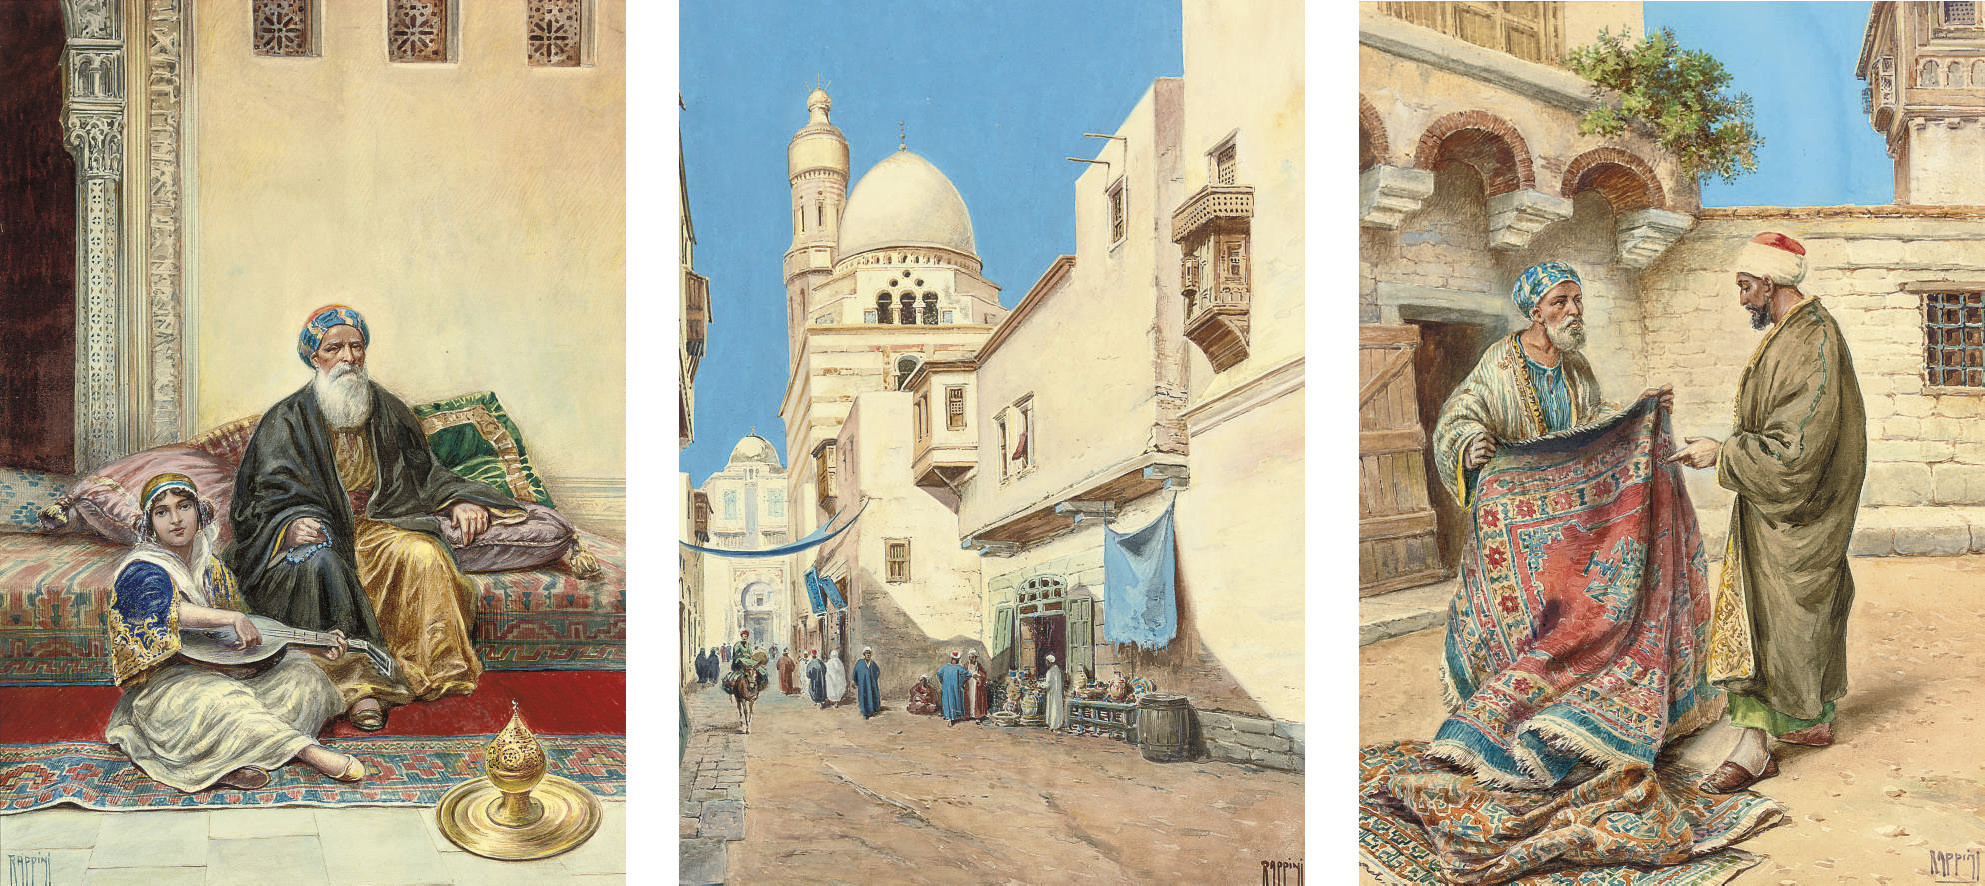 Playing a tune in a harem; The carpet seller; and a bustling street, Cairo